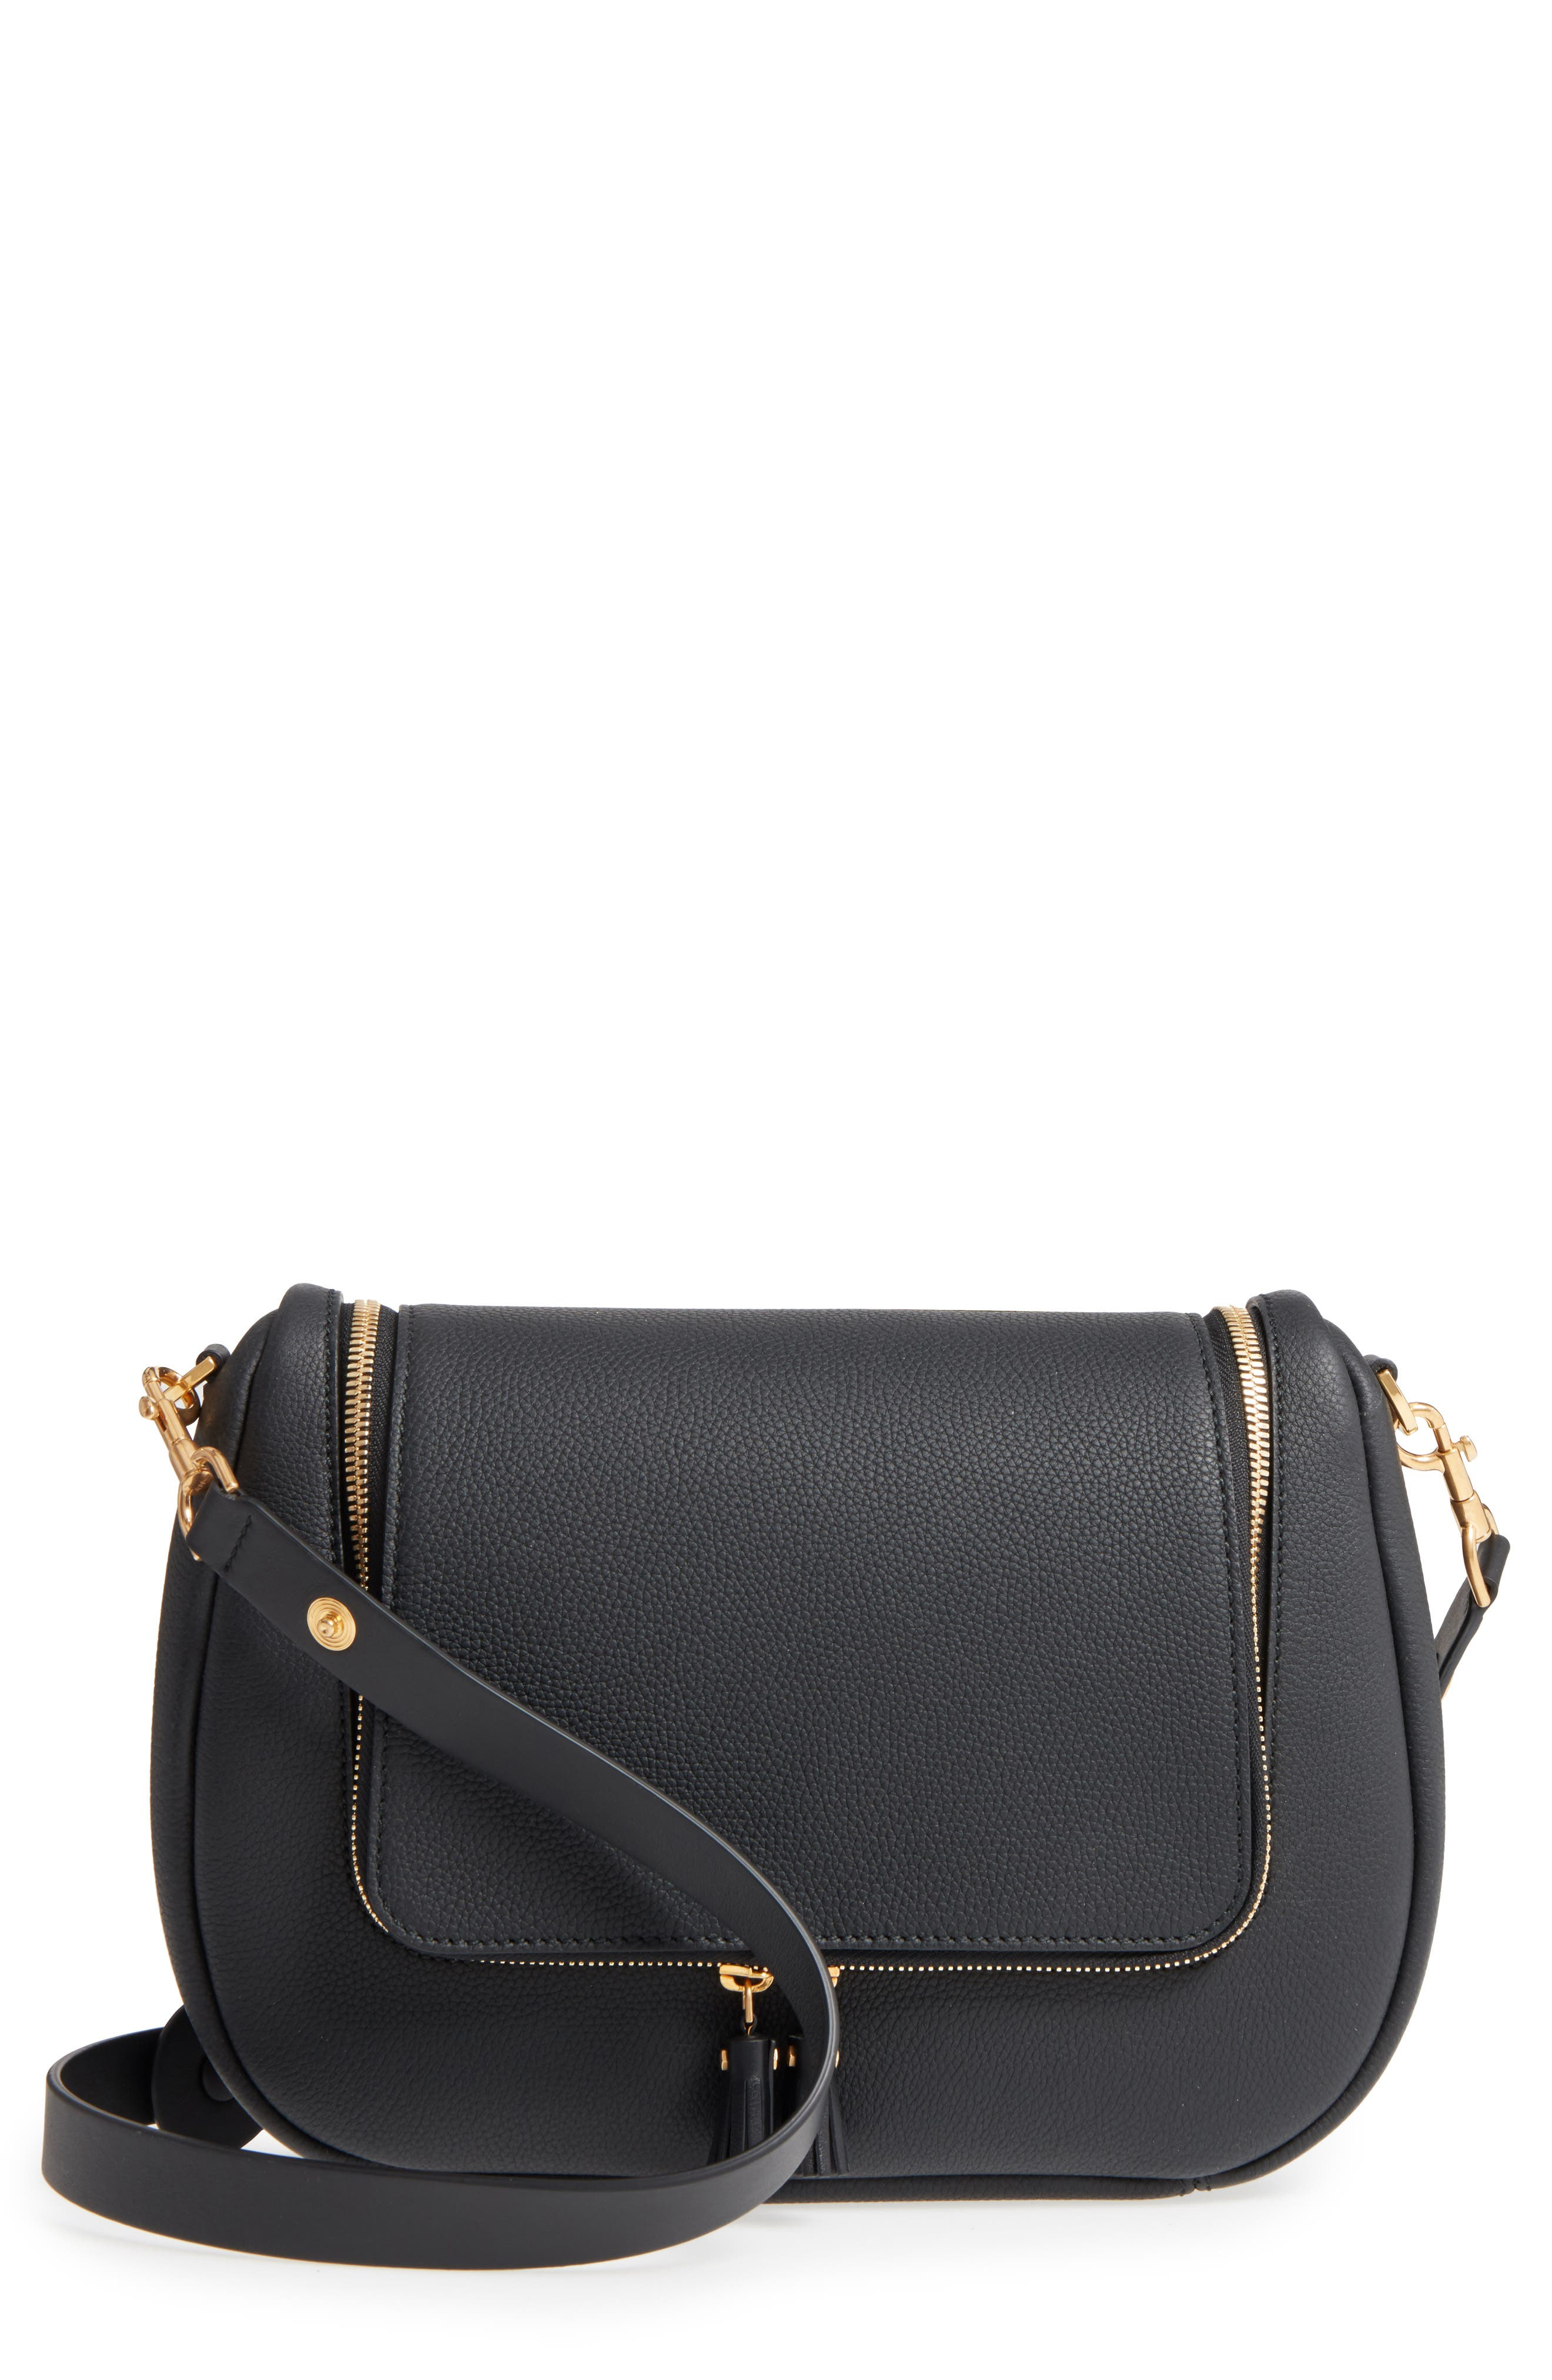 Anya Hindmarch Mini Vere Soft Grained Leather Satchel